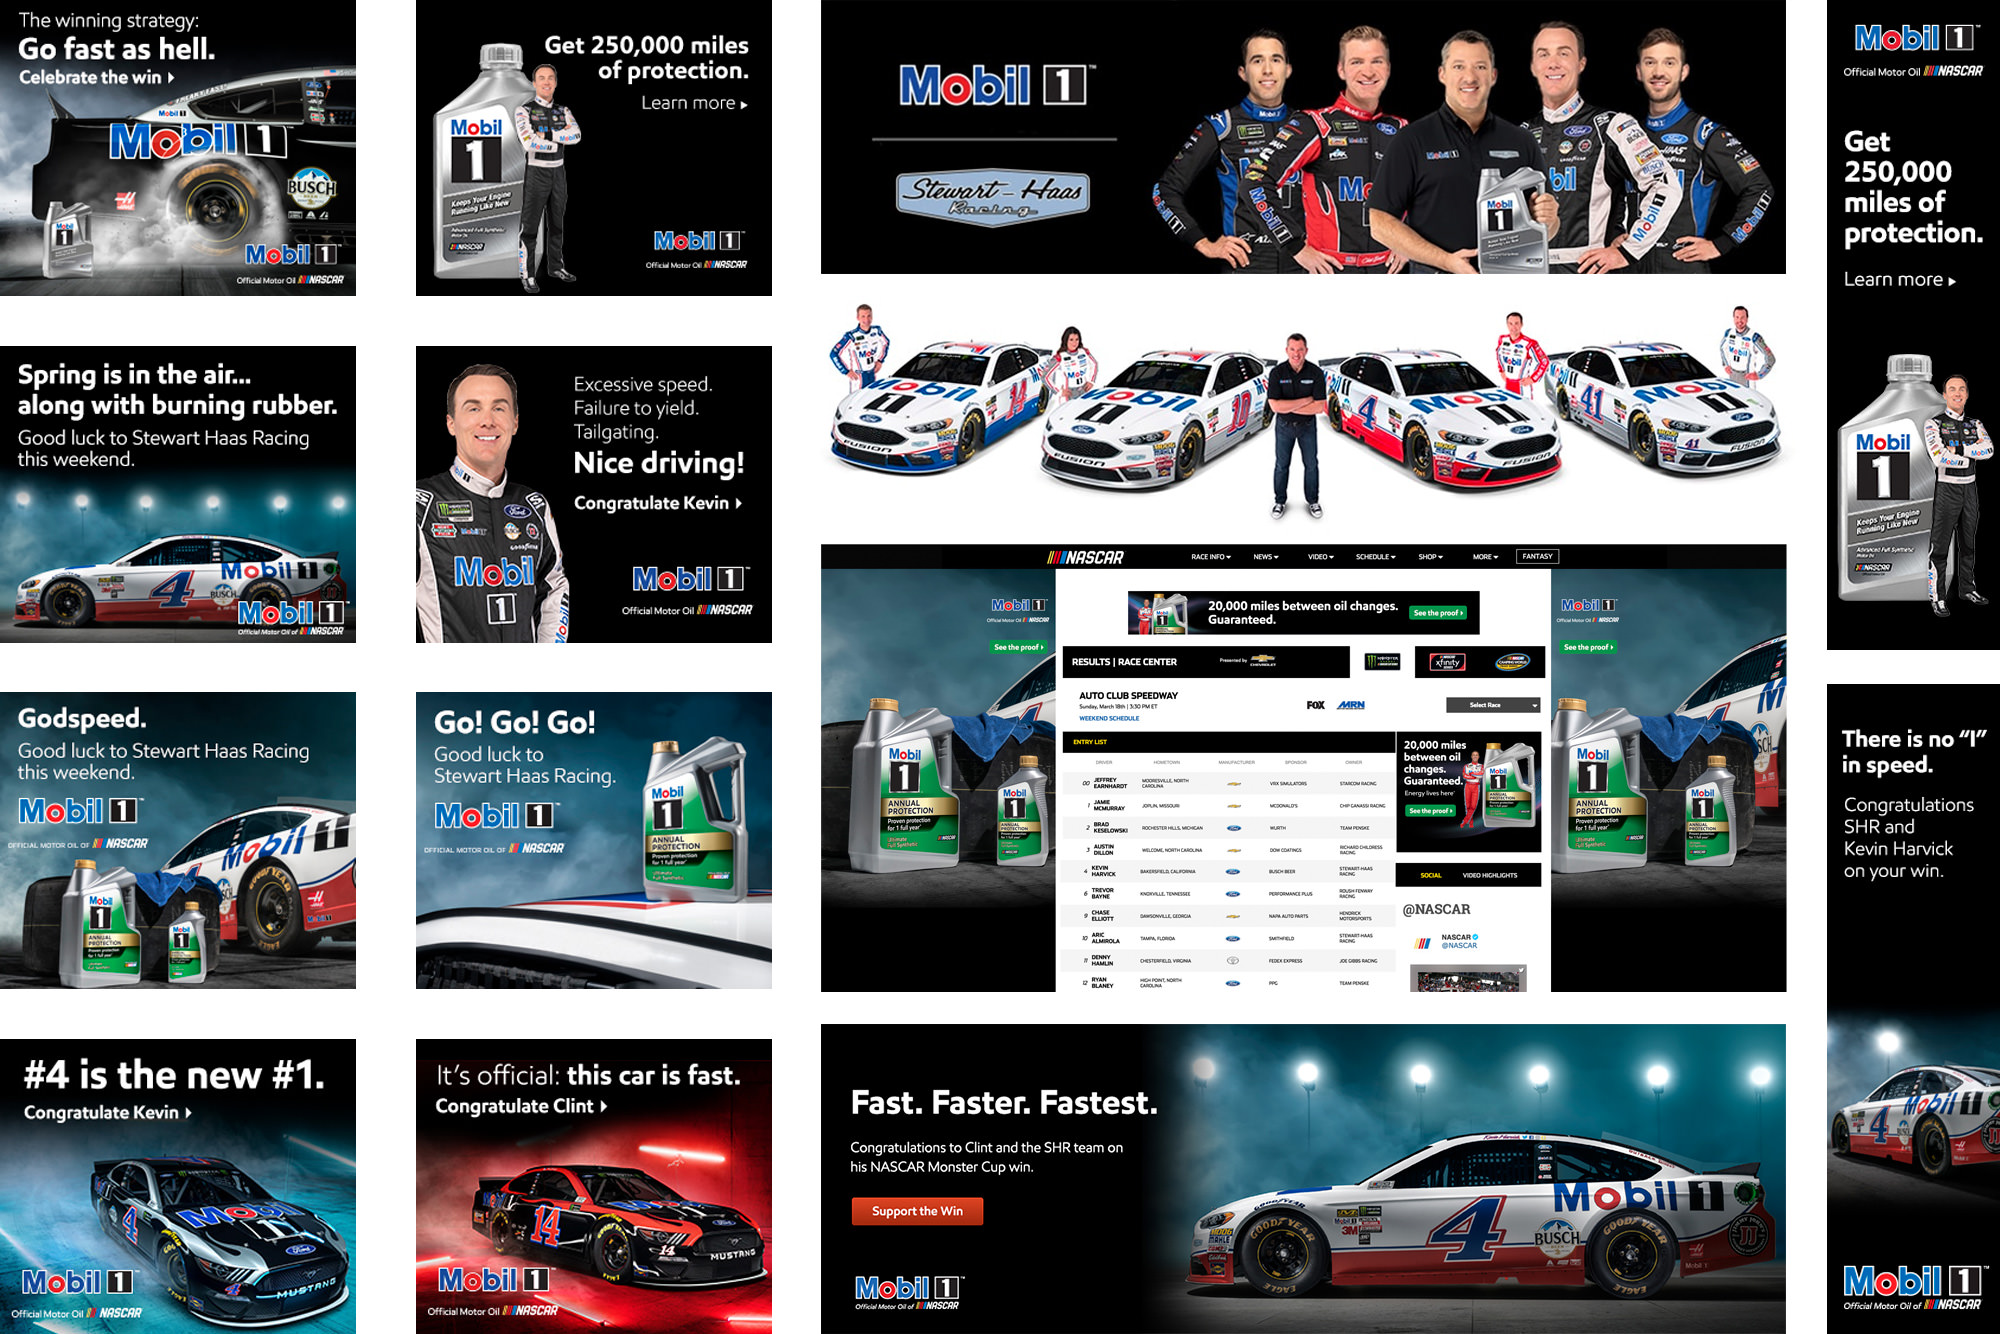 Exxon Mobil 1 NASCAR advertising tearsheets